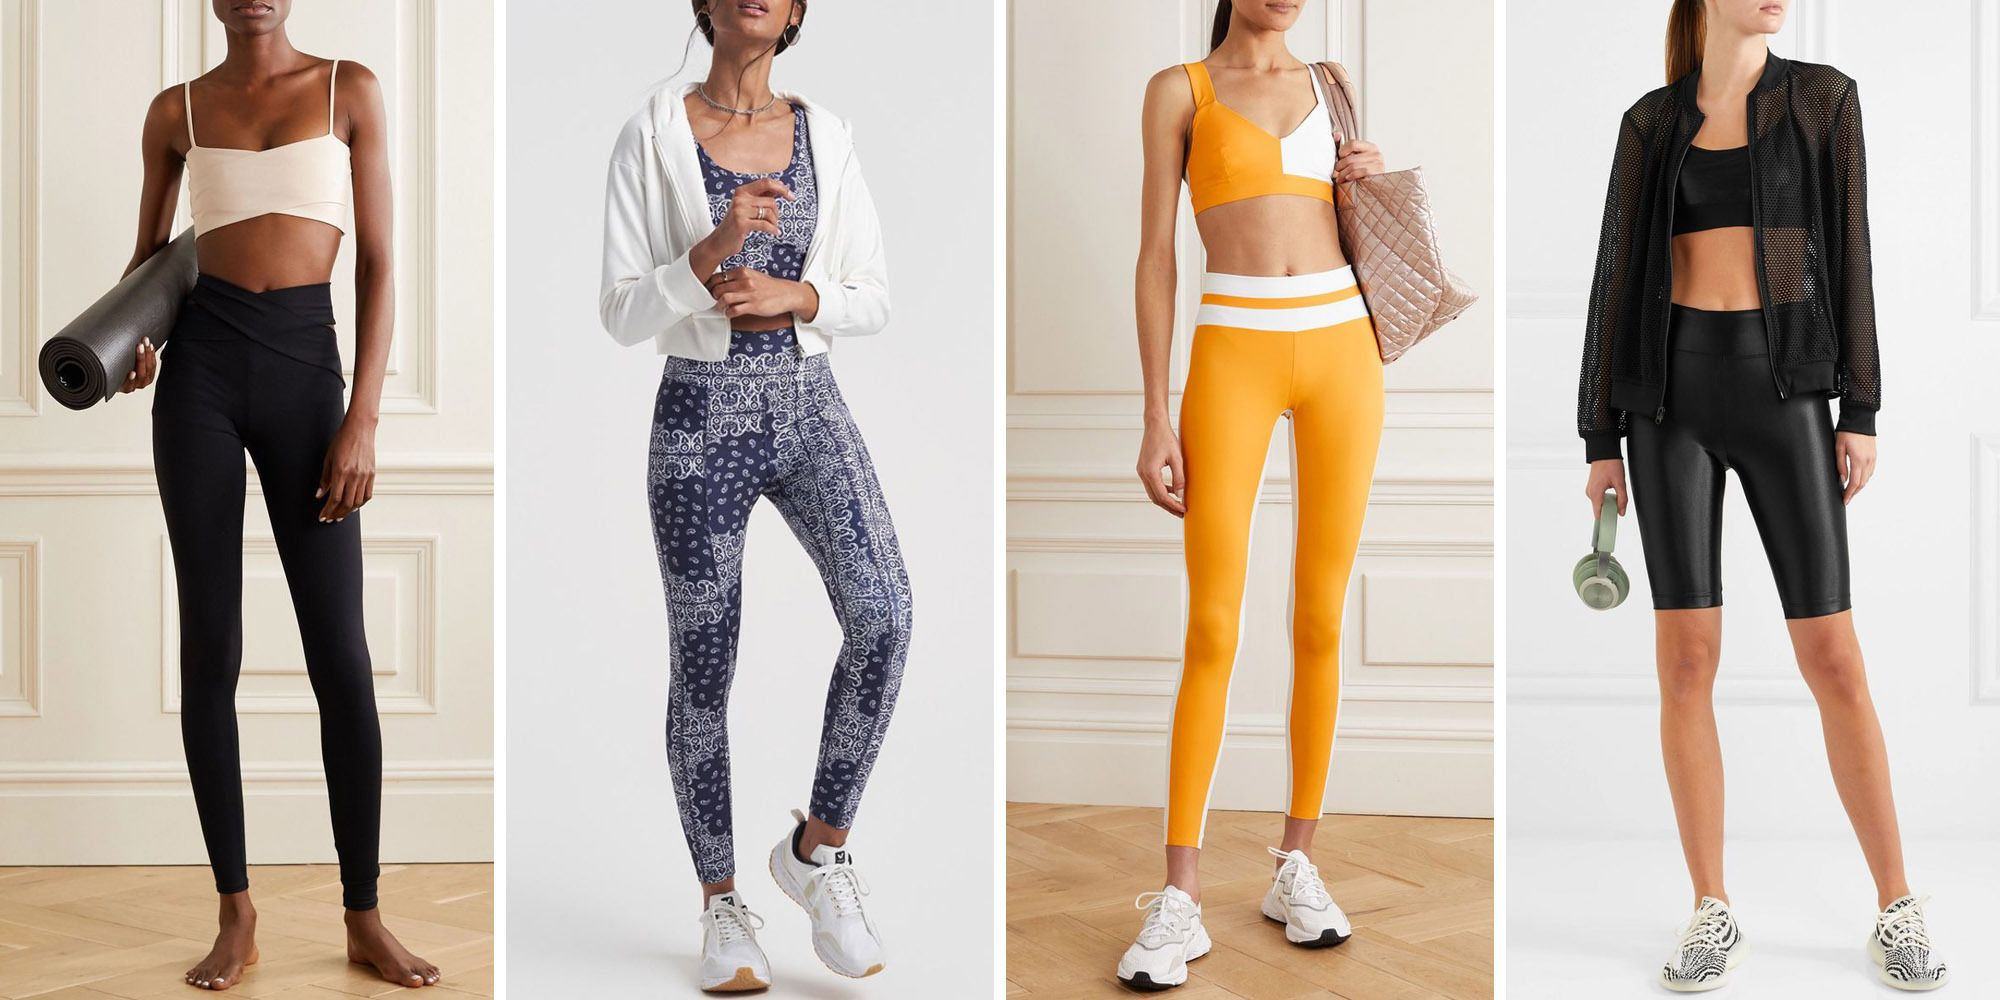 34 Best Activewear Brands to Know - Cute Activewear for Women